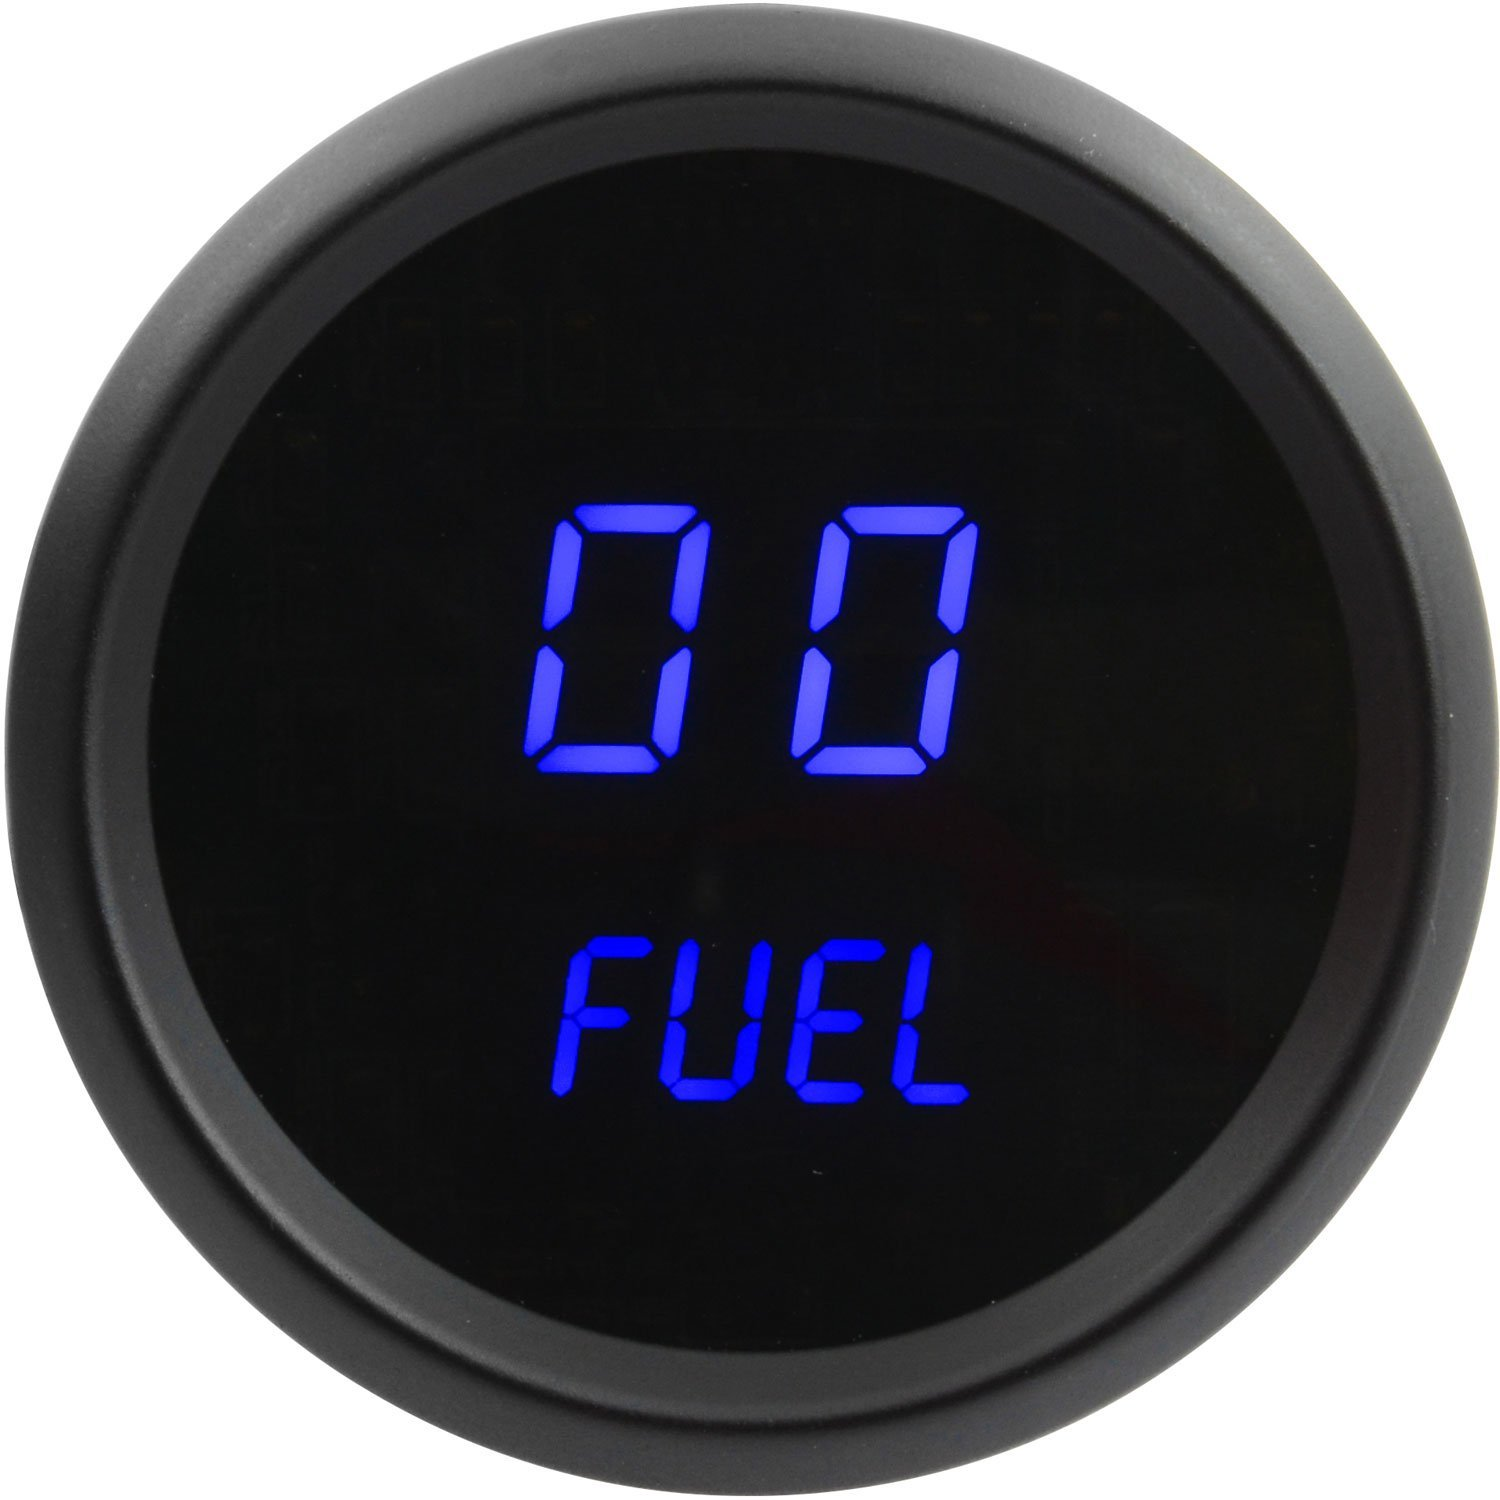 JEGS Performance Products 41433 Fuel Level Gauge LED Digital 99% Read Out 2-1/16